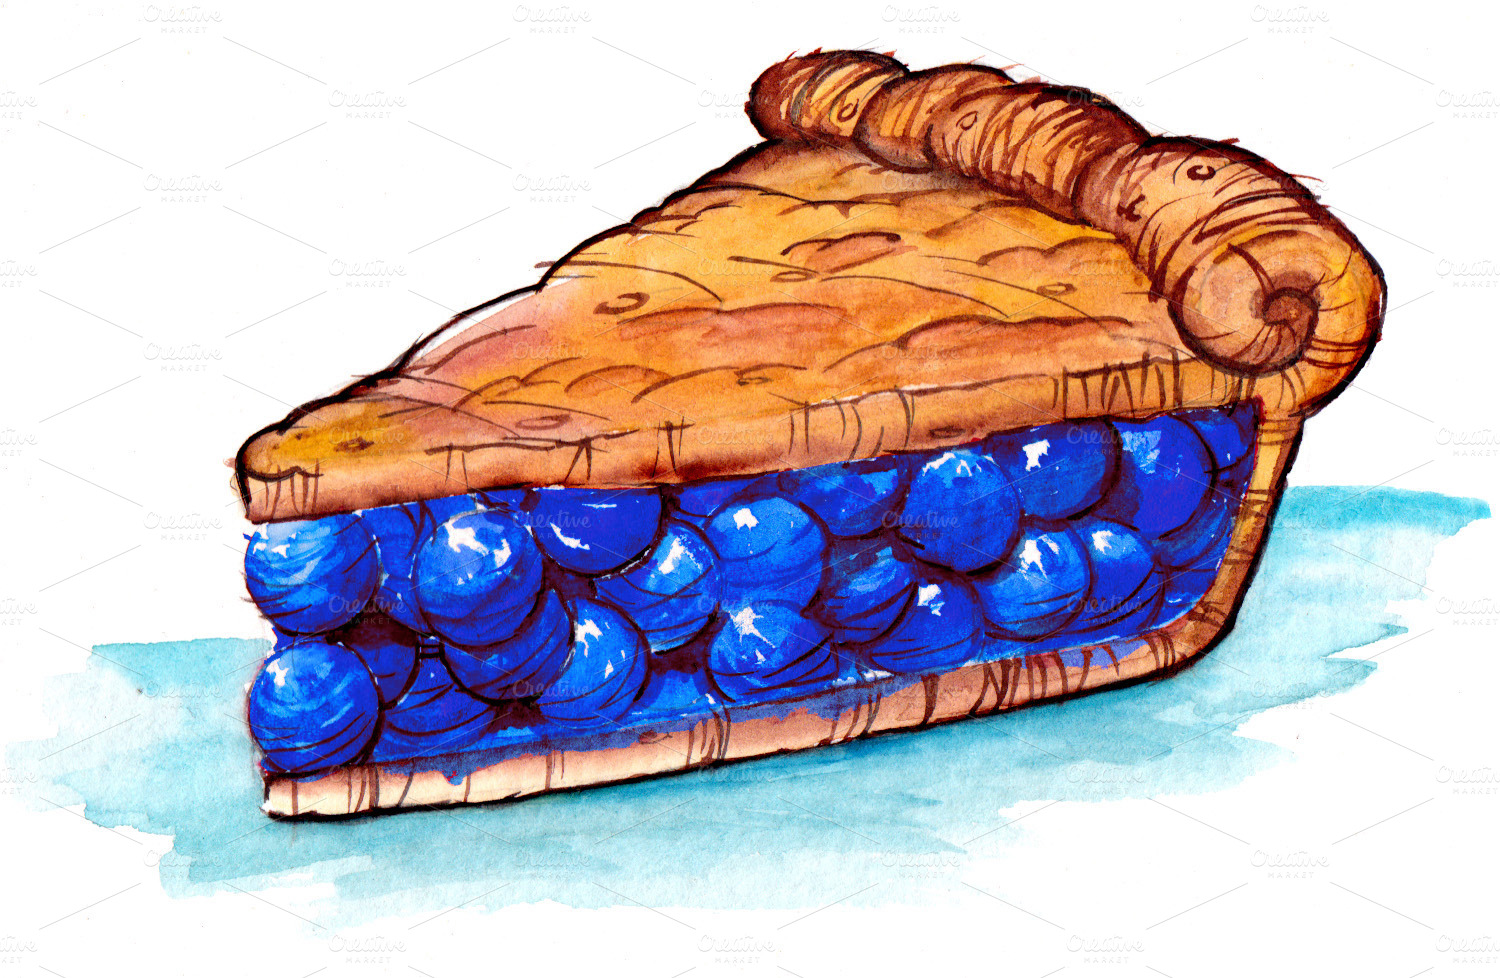 1500x978 Drawn Pies Blueberry Pie